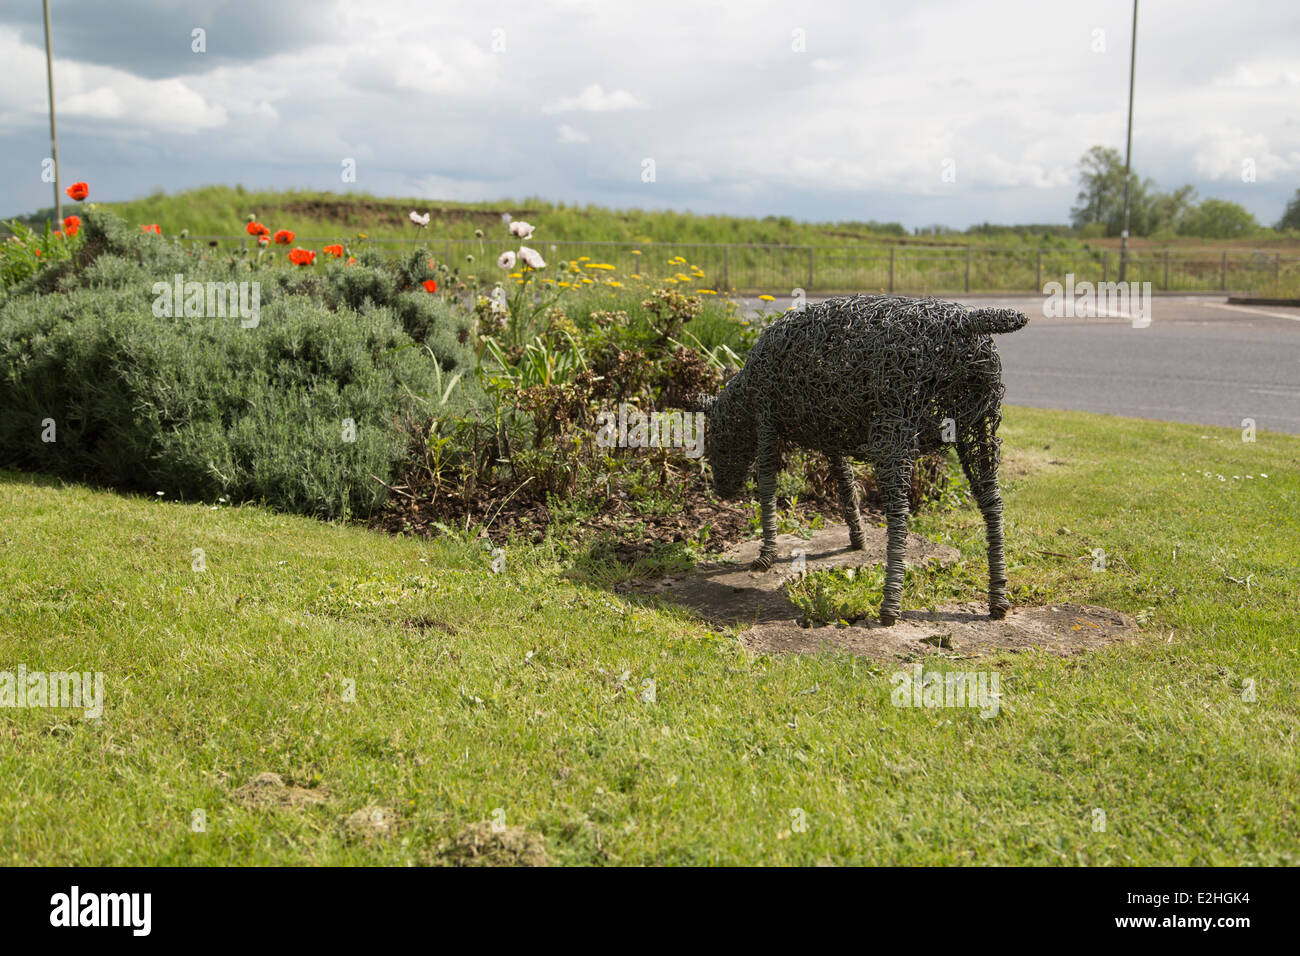 Bicester traffic roundabout sheep models - Stock Image